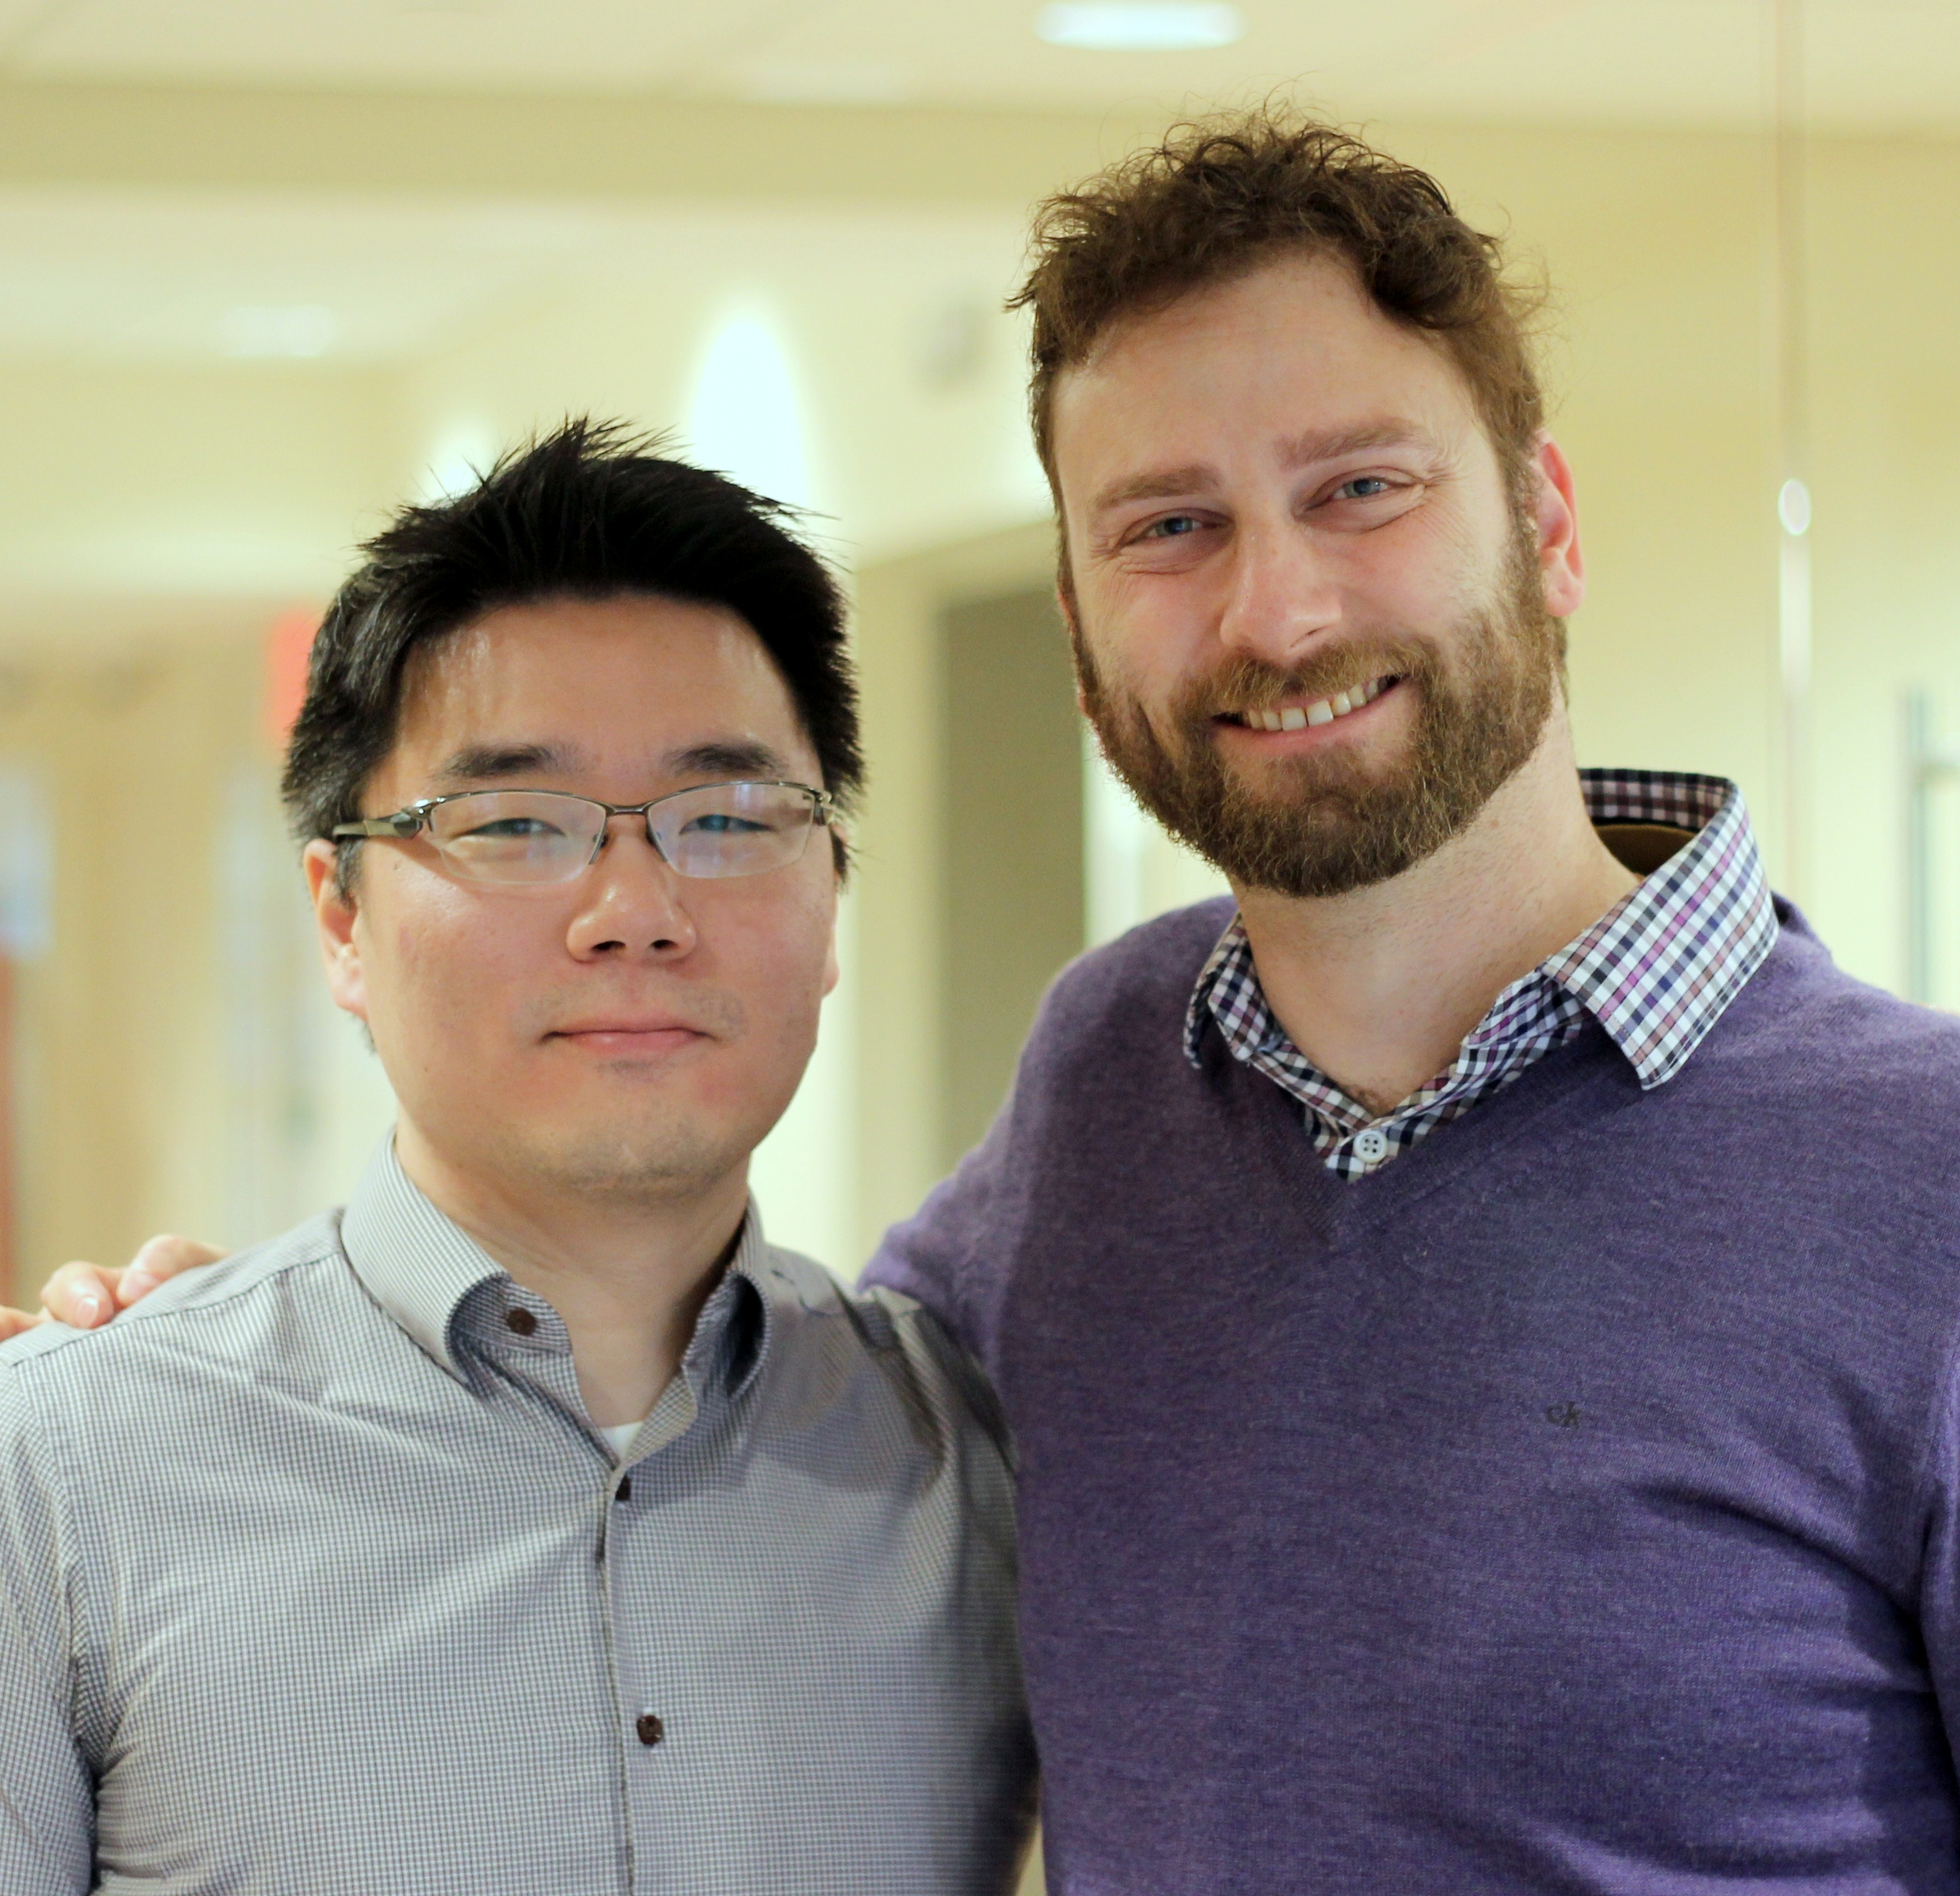 Drs. Wonjae Chung and Gil Hoftman both joined the Pitt Psychiatry residency training program after completing the MSTP.